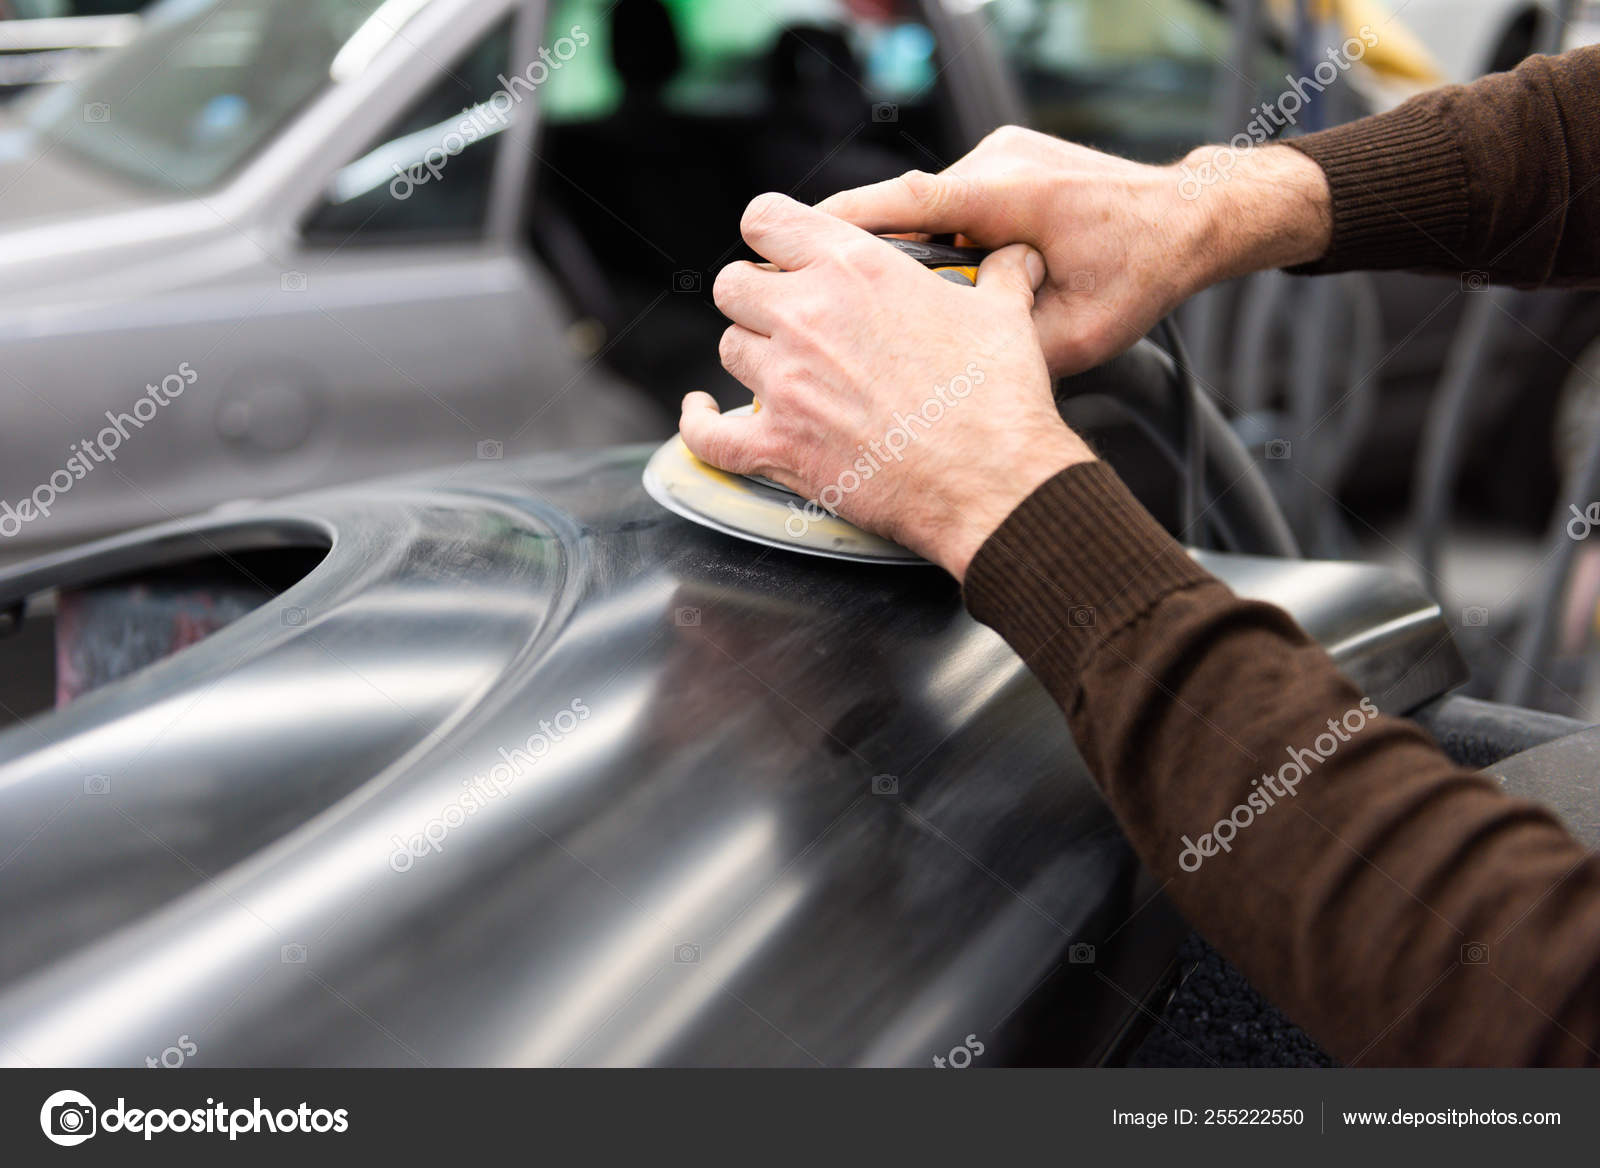 Car mechanic with dust mask grinds a car part in a service station